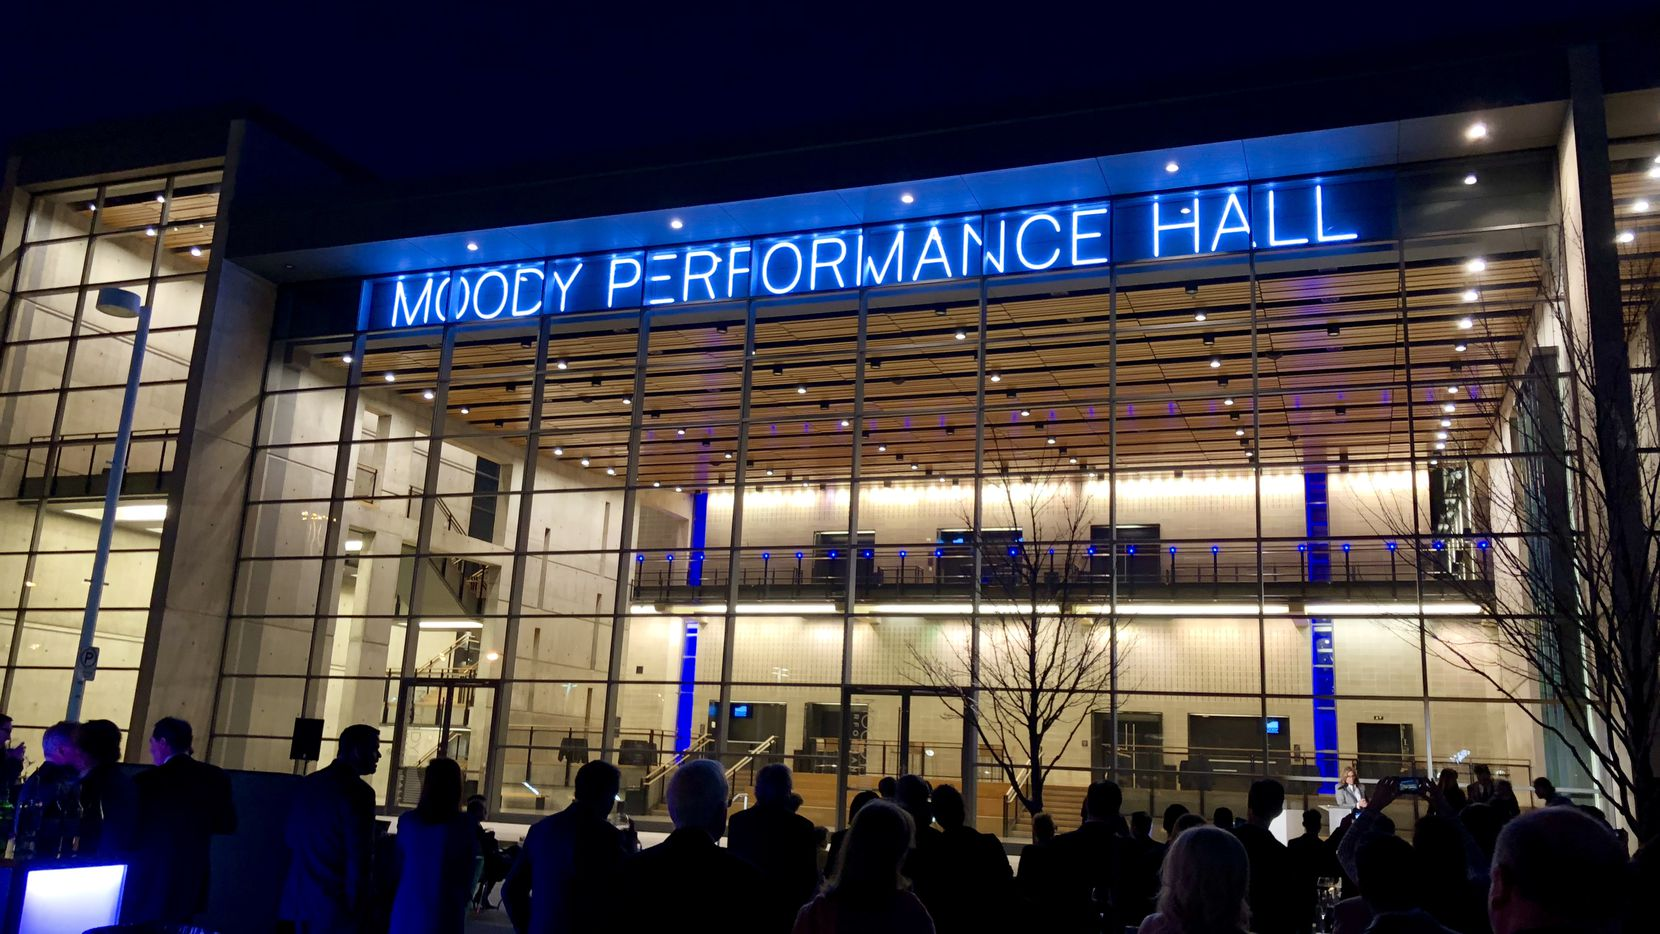 Moody Performance Hall. Photo by Chris Heinbaugh, AT&T Performing Arts Center.